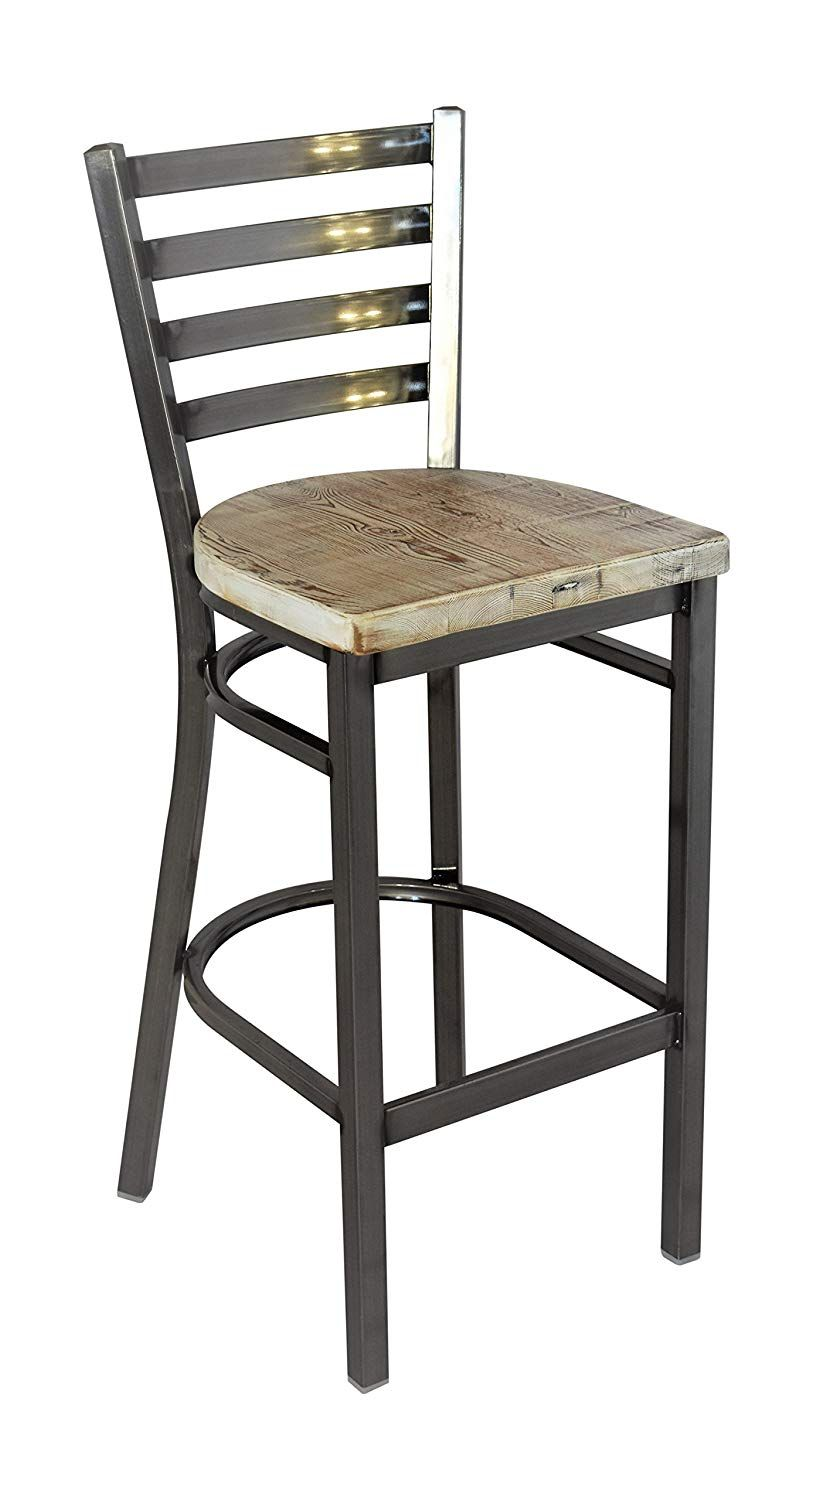 Reclaimed Wood Seat Bar Stool With Ladder Back Metal Frame